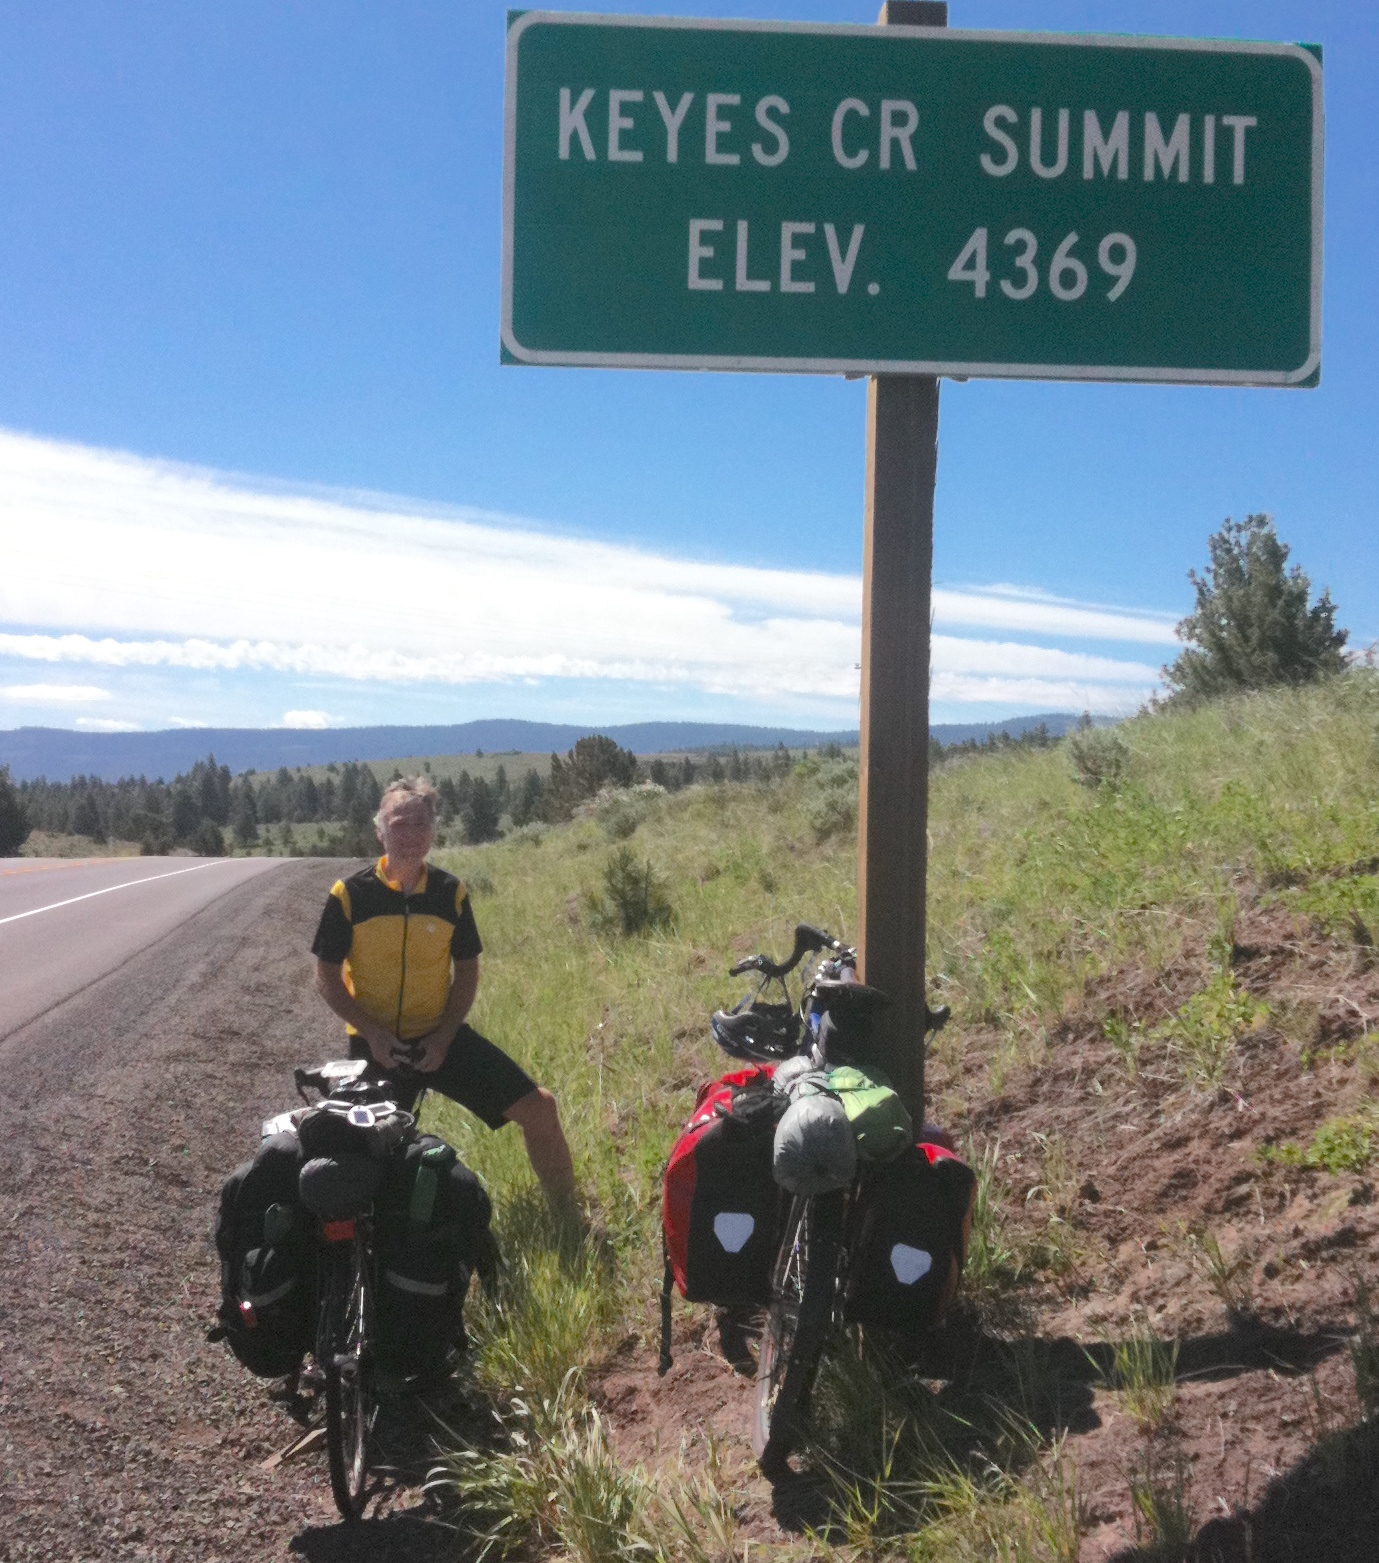 Keyes Creek Summit